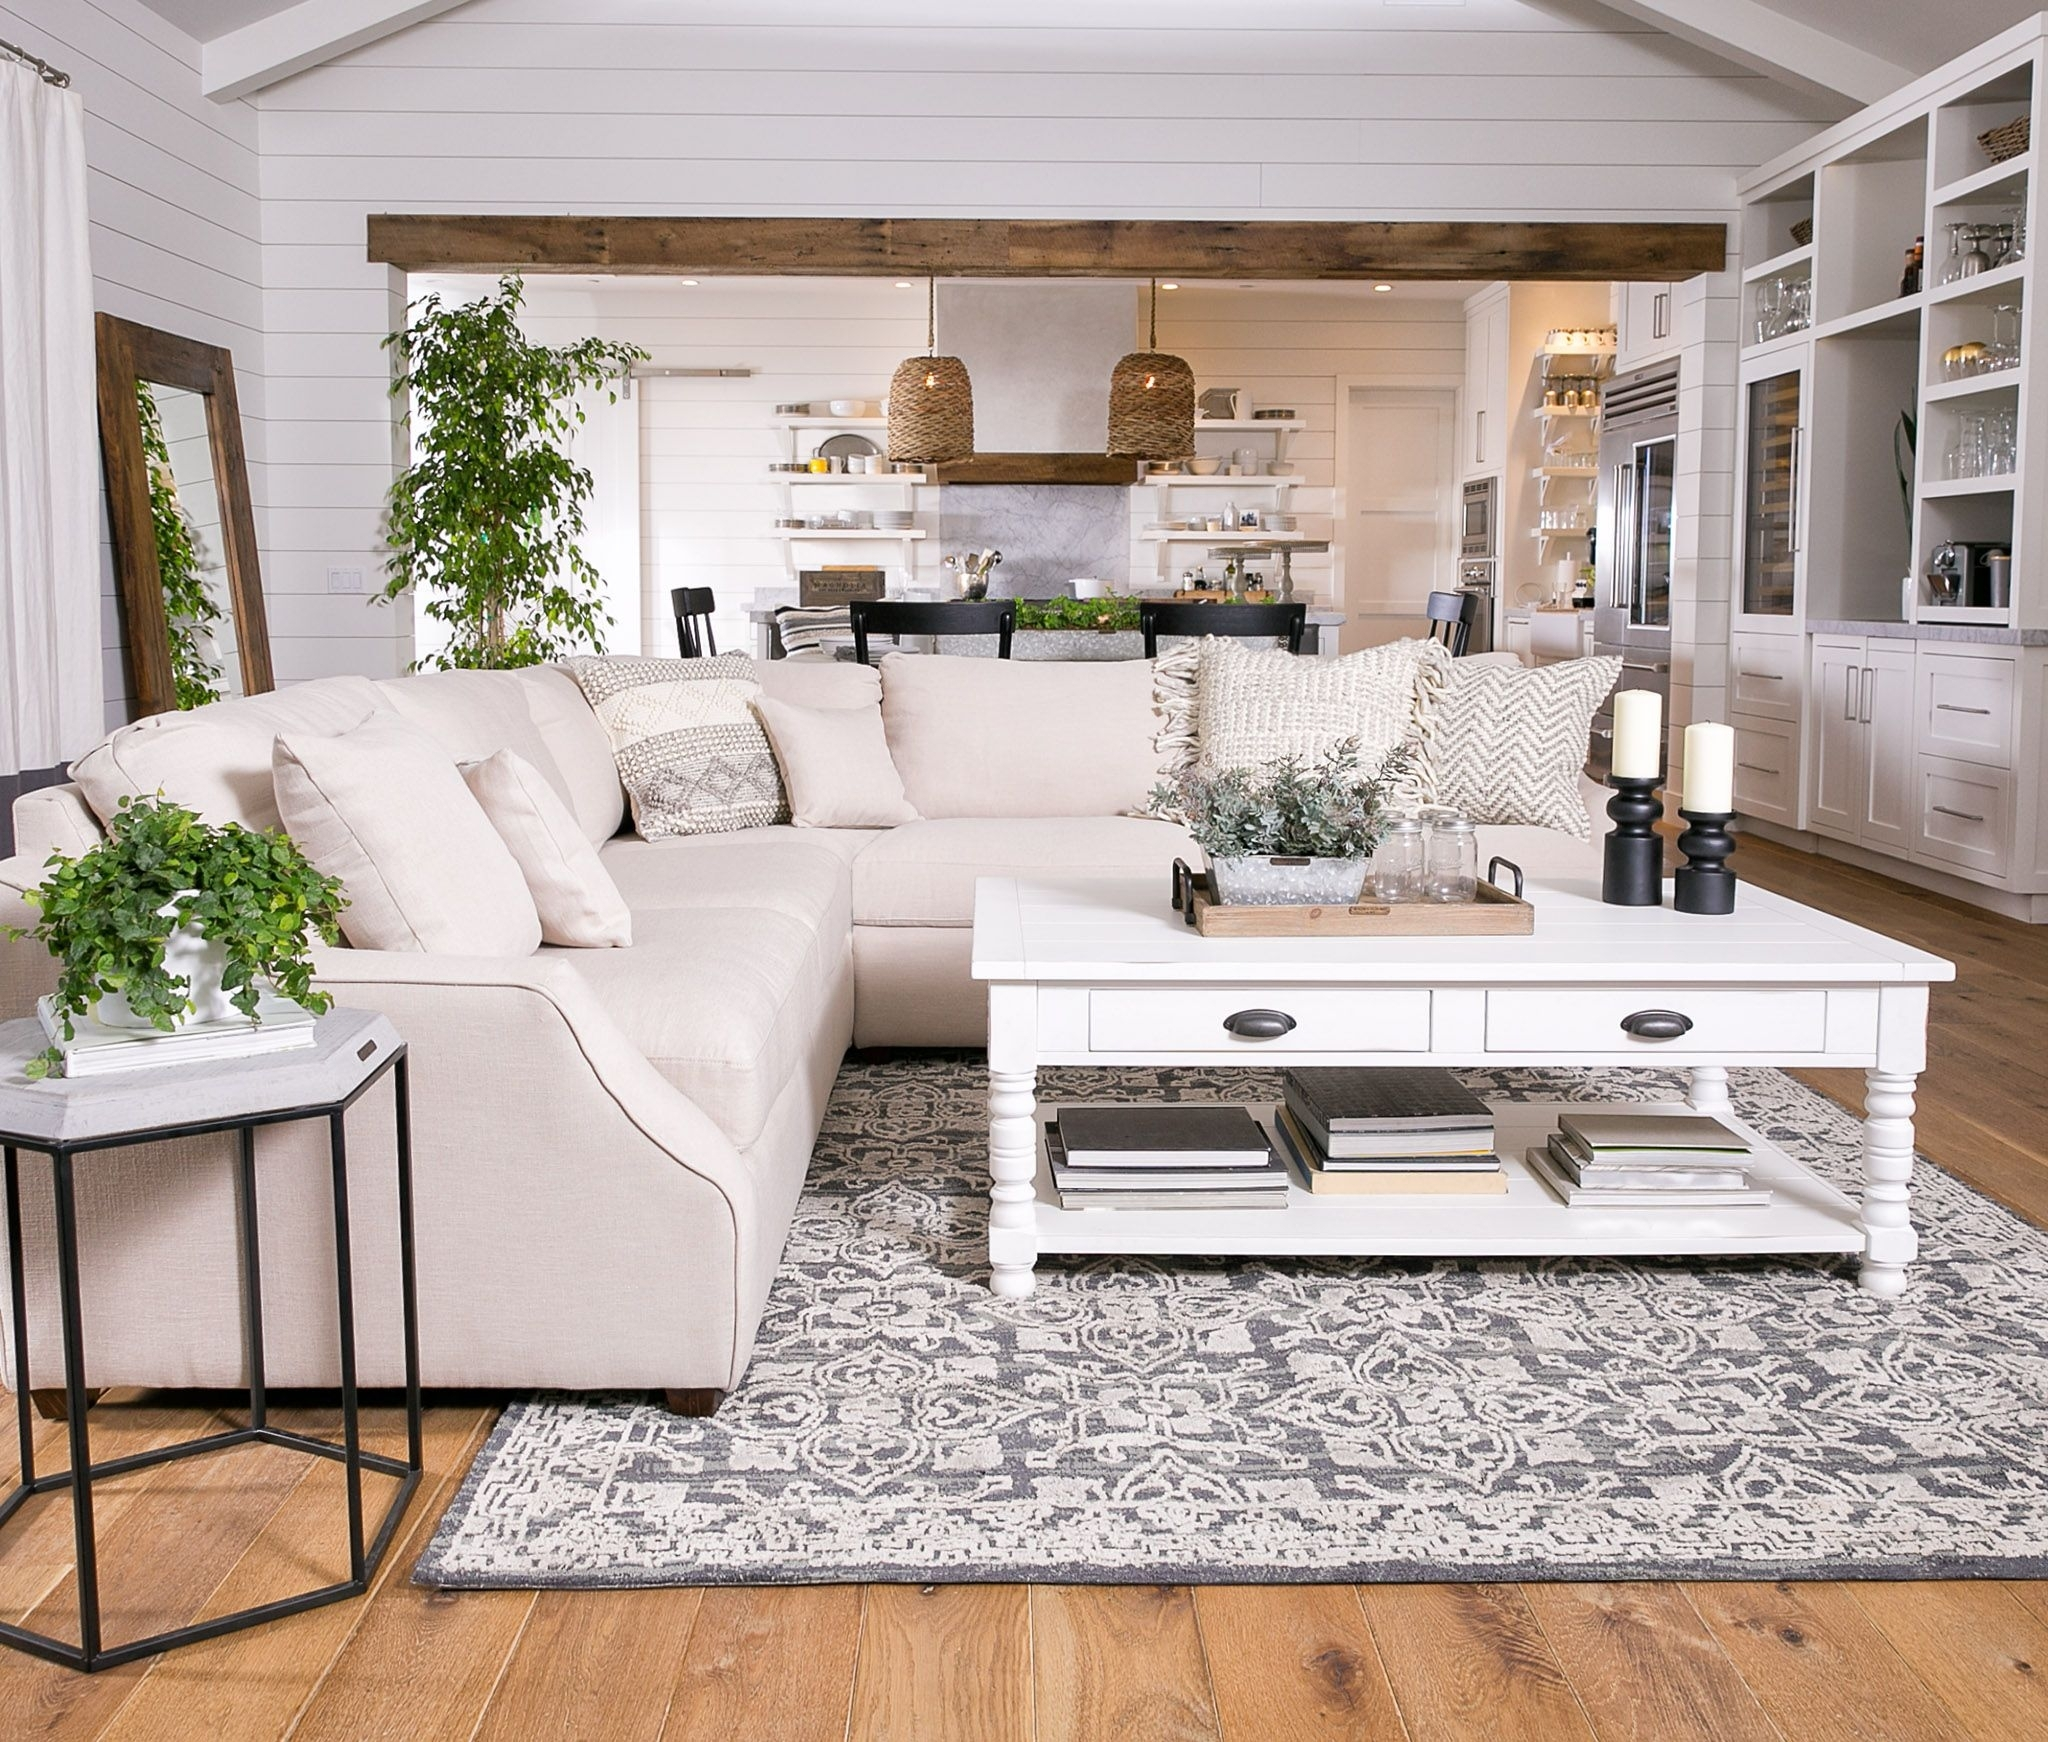 Magnolia Home Homestead 3 Piece Sectionaljoanna Gaines For Magnolia Home Homestead 4 Piece Sectionals By Joanna Gaines (View 11 of 30)